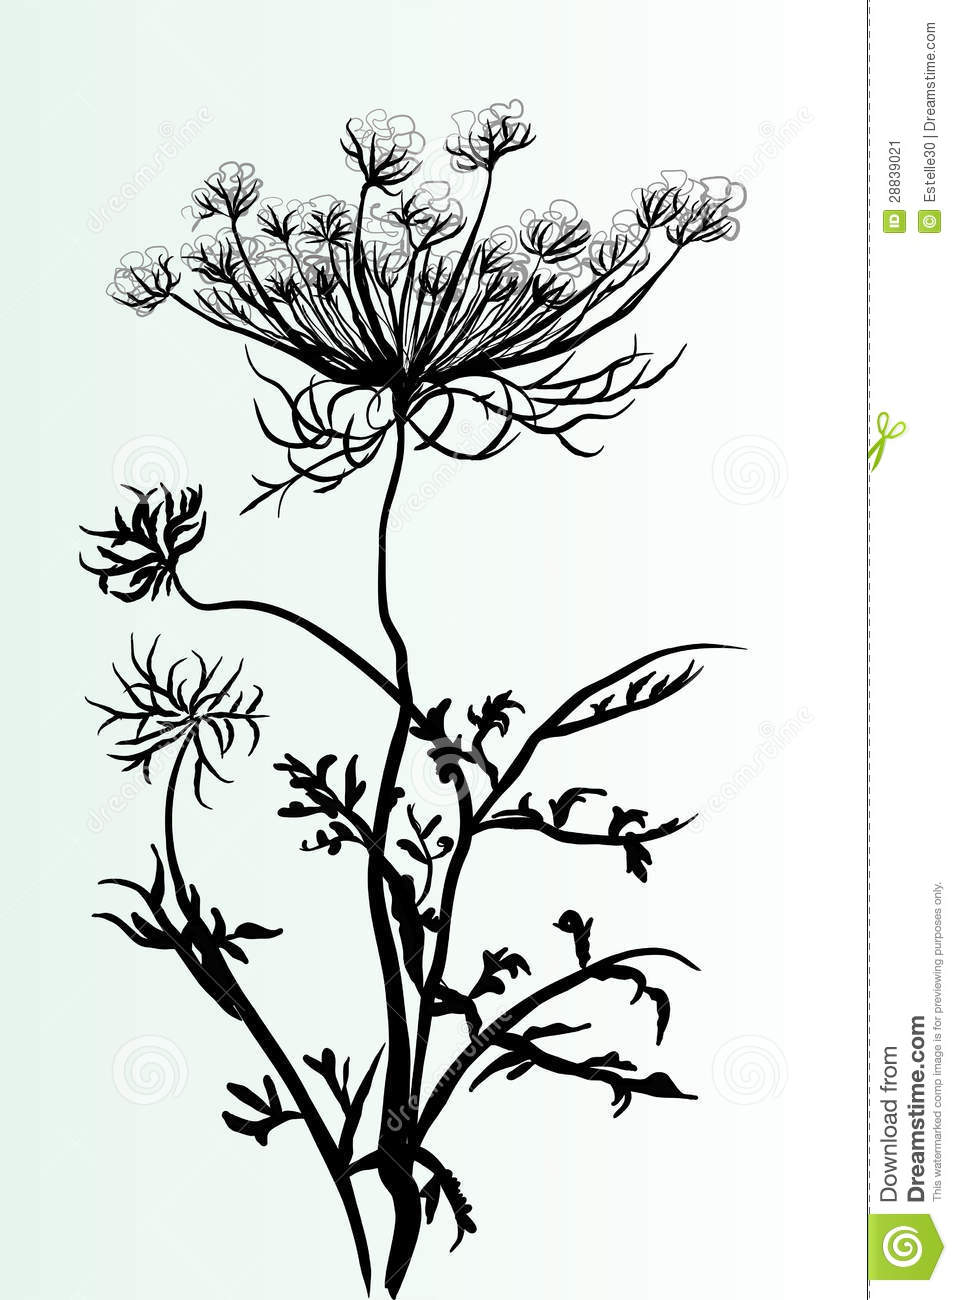 Wildflower Line Drawing : Wildflower outline stock image